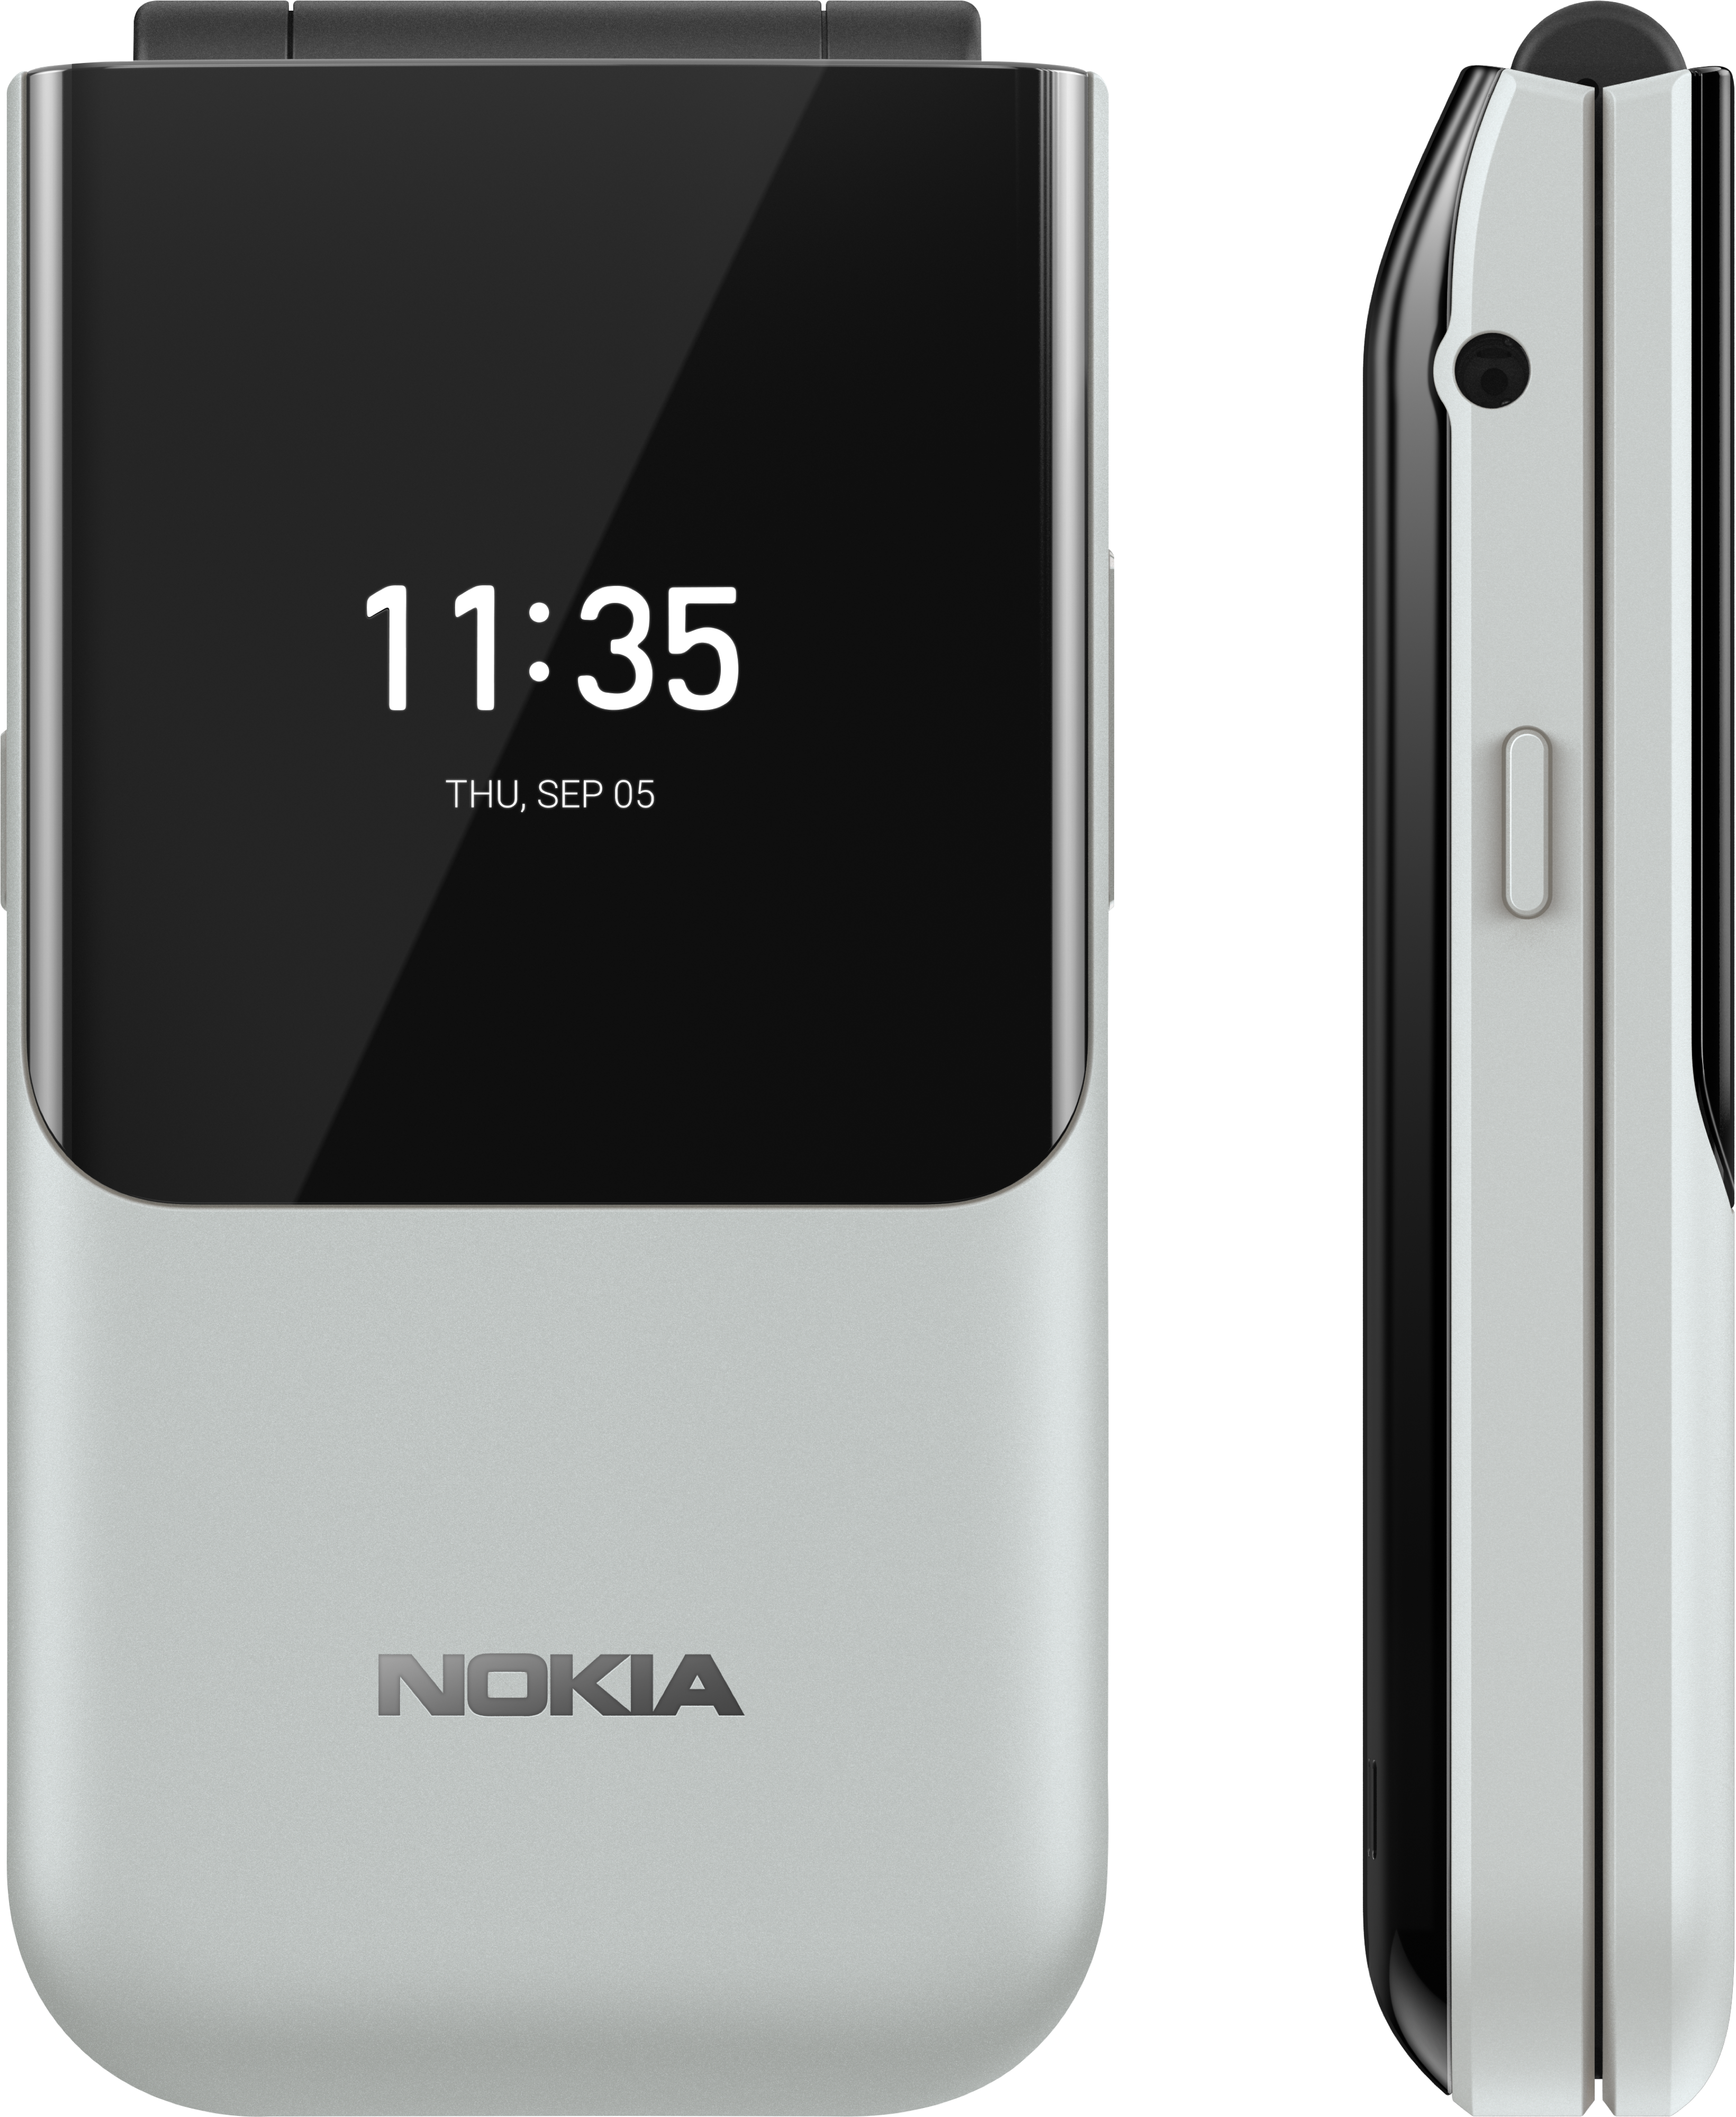 nokia_2720_Flip-DTC-Durability.png?f=center&fit=fill&q=88